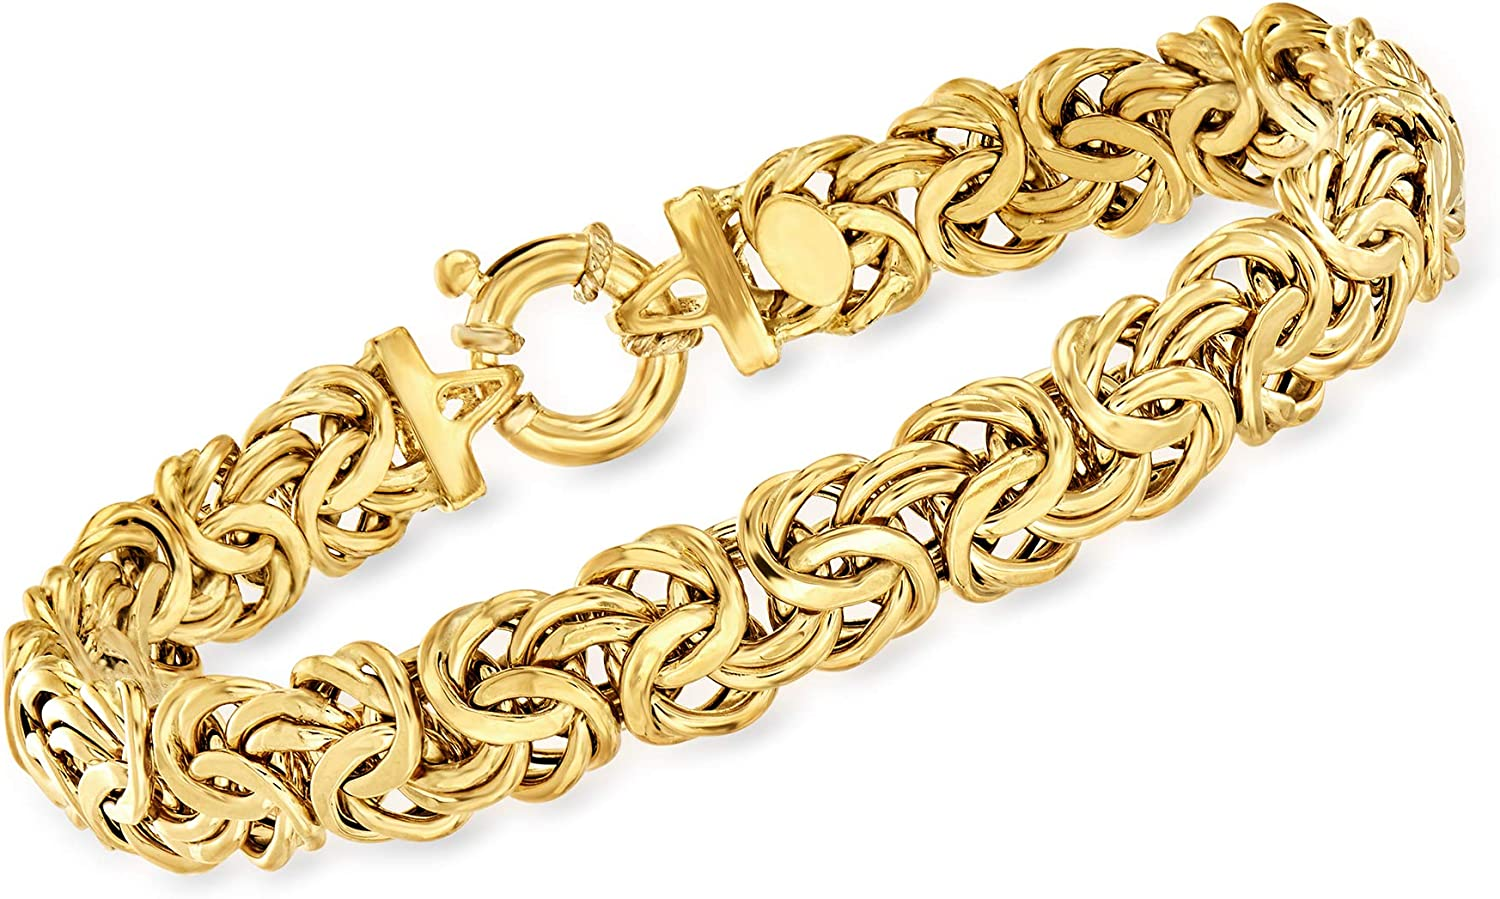 Ross-Simons Italian 18kt Yellow Gold Byzantine Bracelet For Women 7, 8 Inch Made in Italy